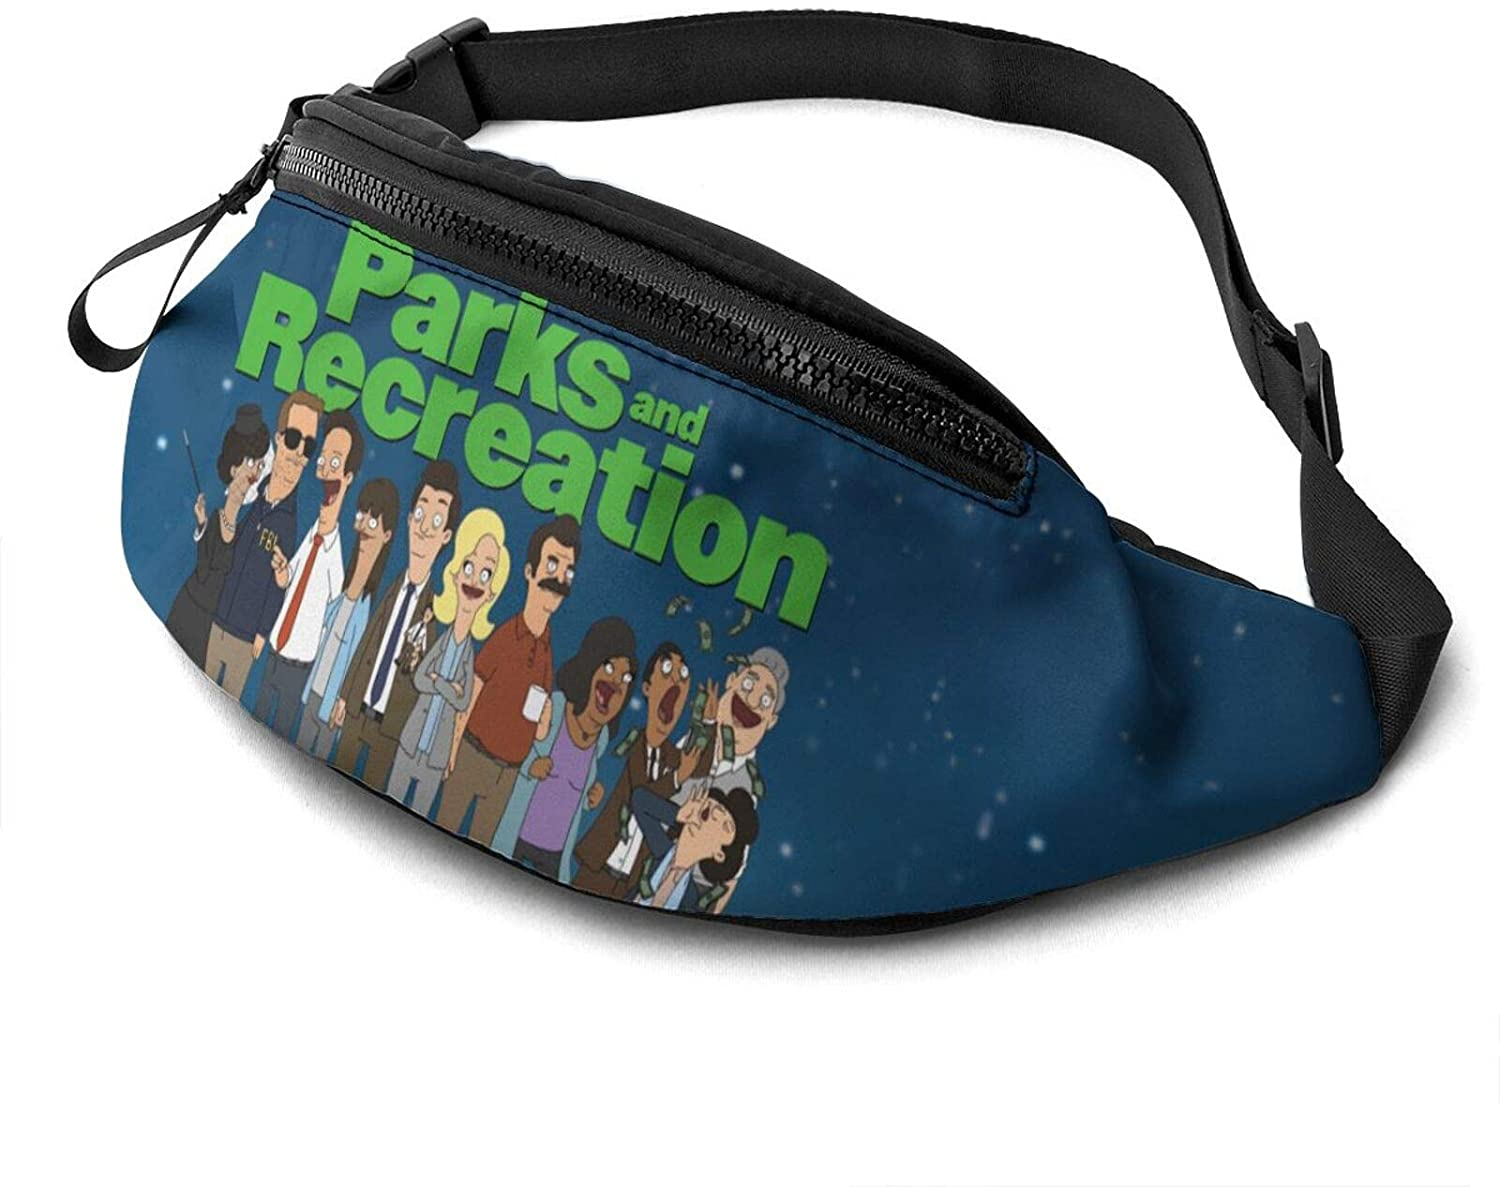 ATSH Parks and Recreation Fanny Pack Running Waist Pack Bag Casual Super Lightweight Fanny Pack for Unisex